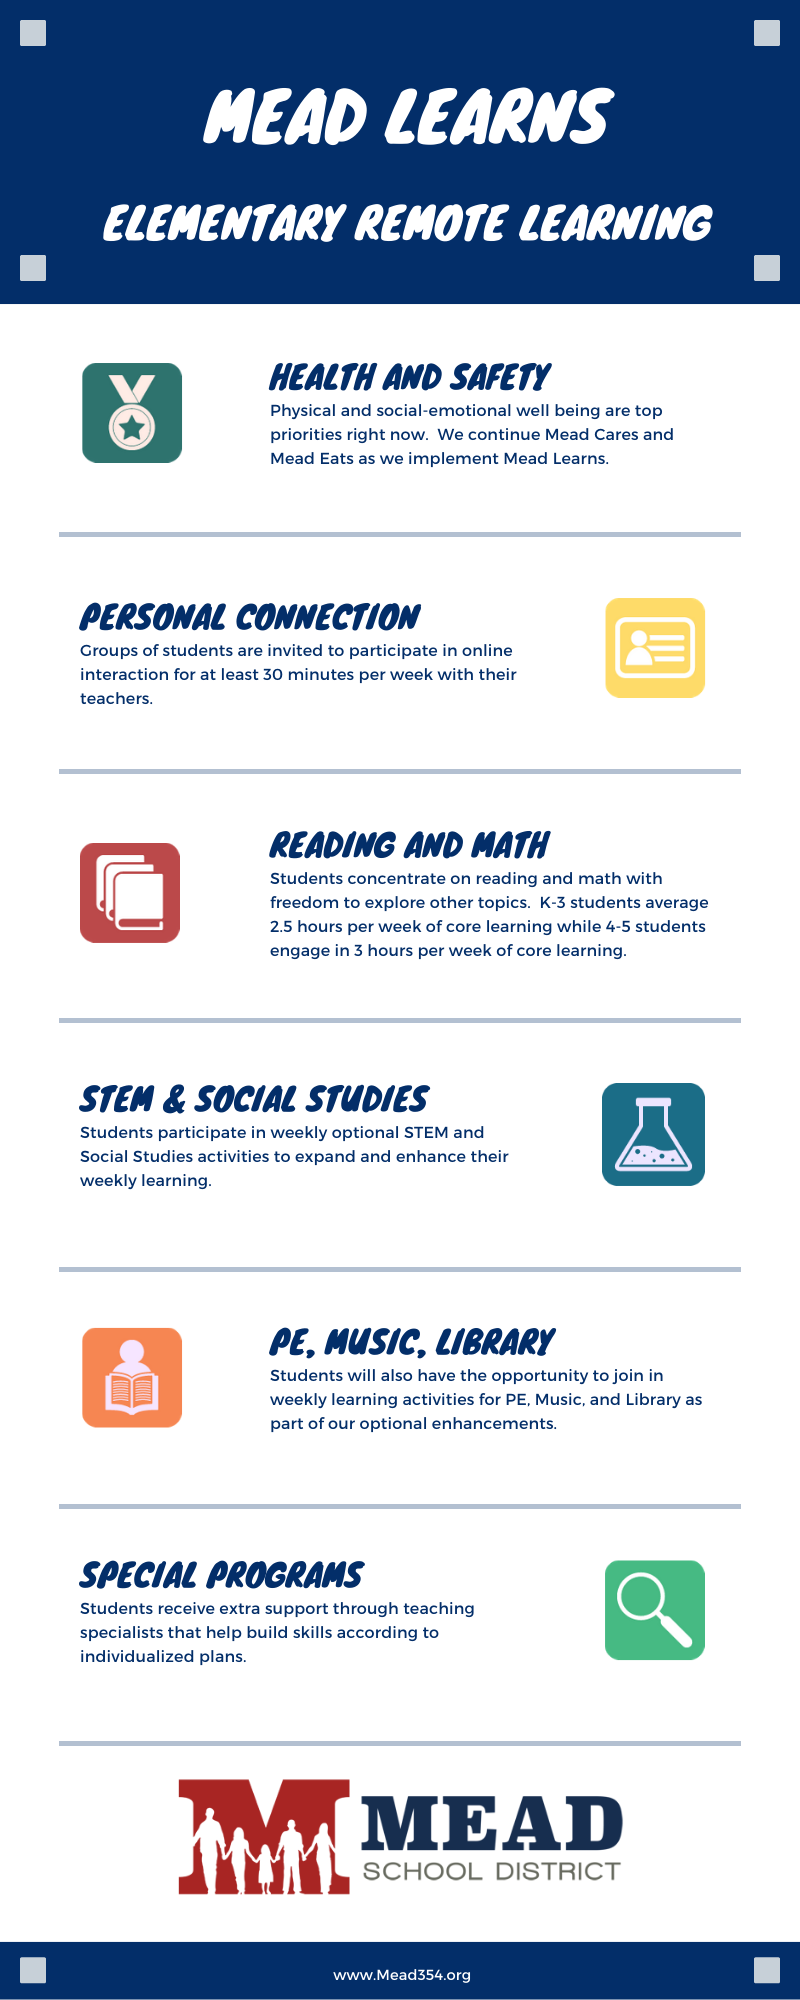 Infographic re: Mead Learns content